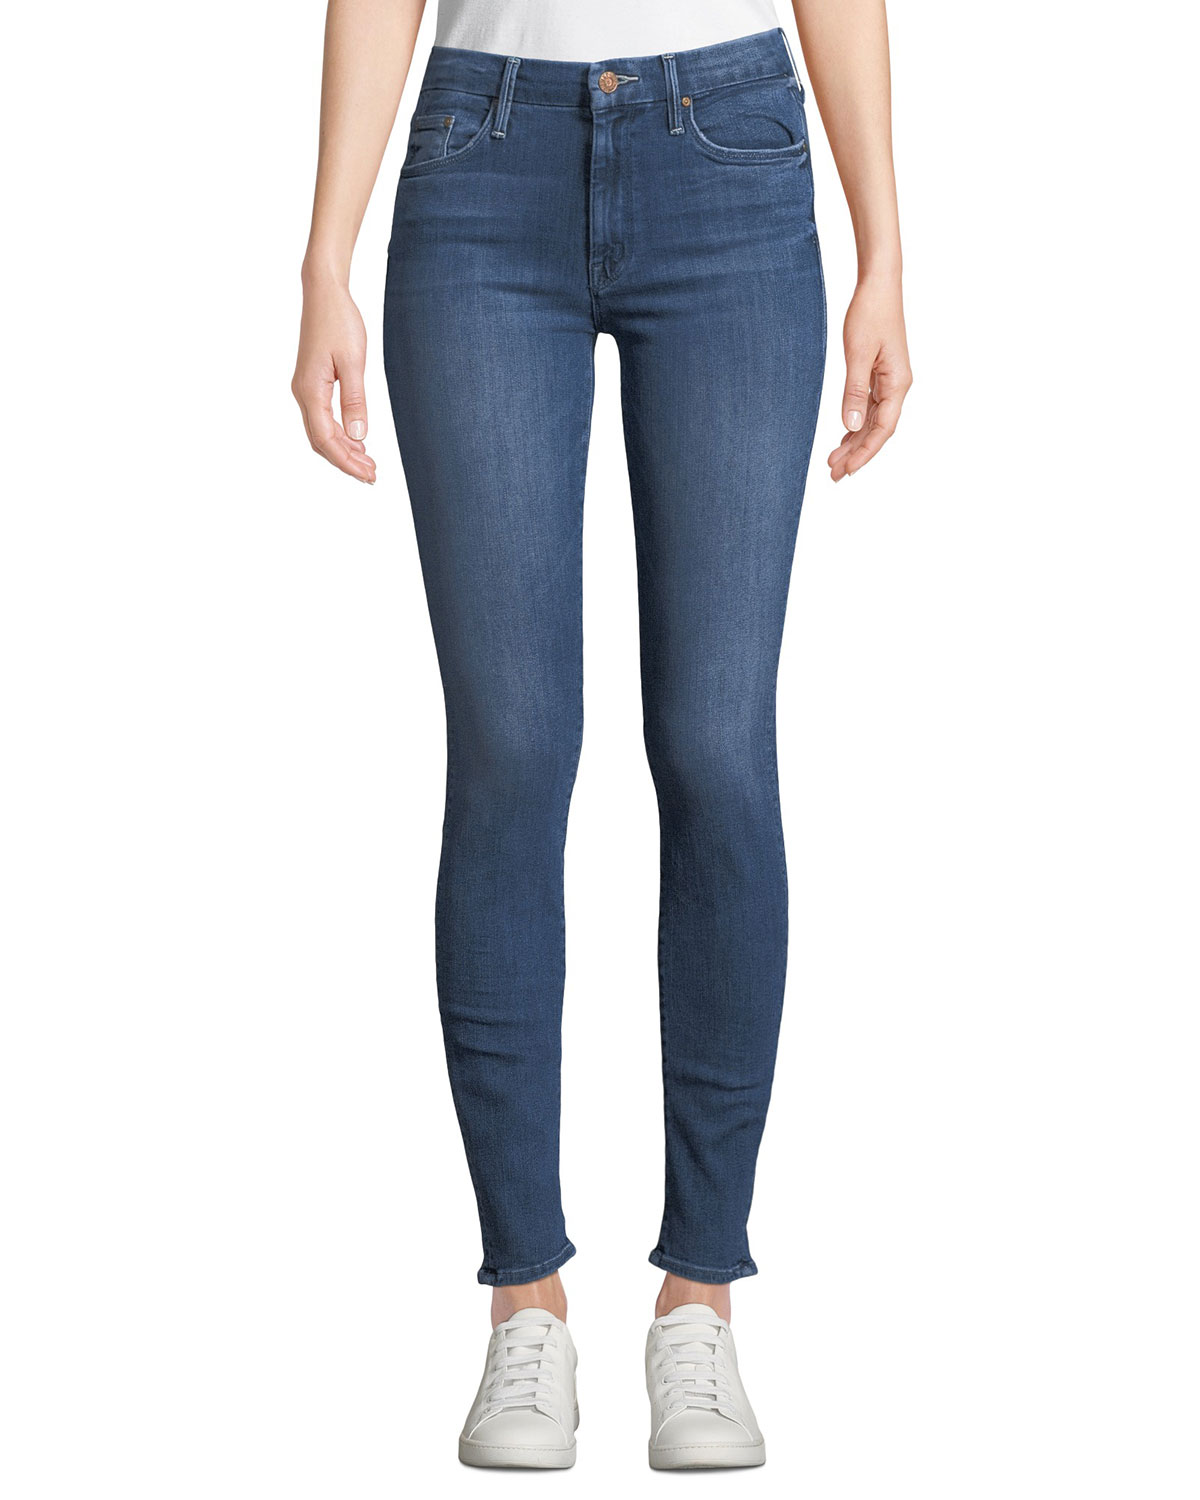 fd8b48e675b Buy skinny pants for women - Best women's skinny pants shop - Cools.com